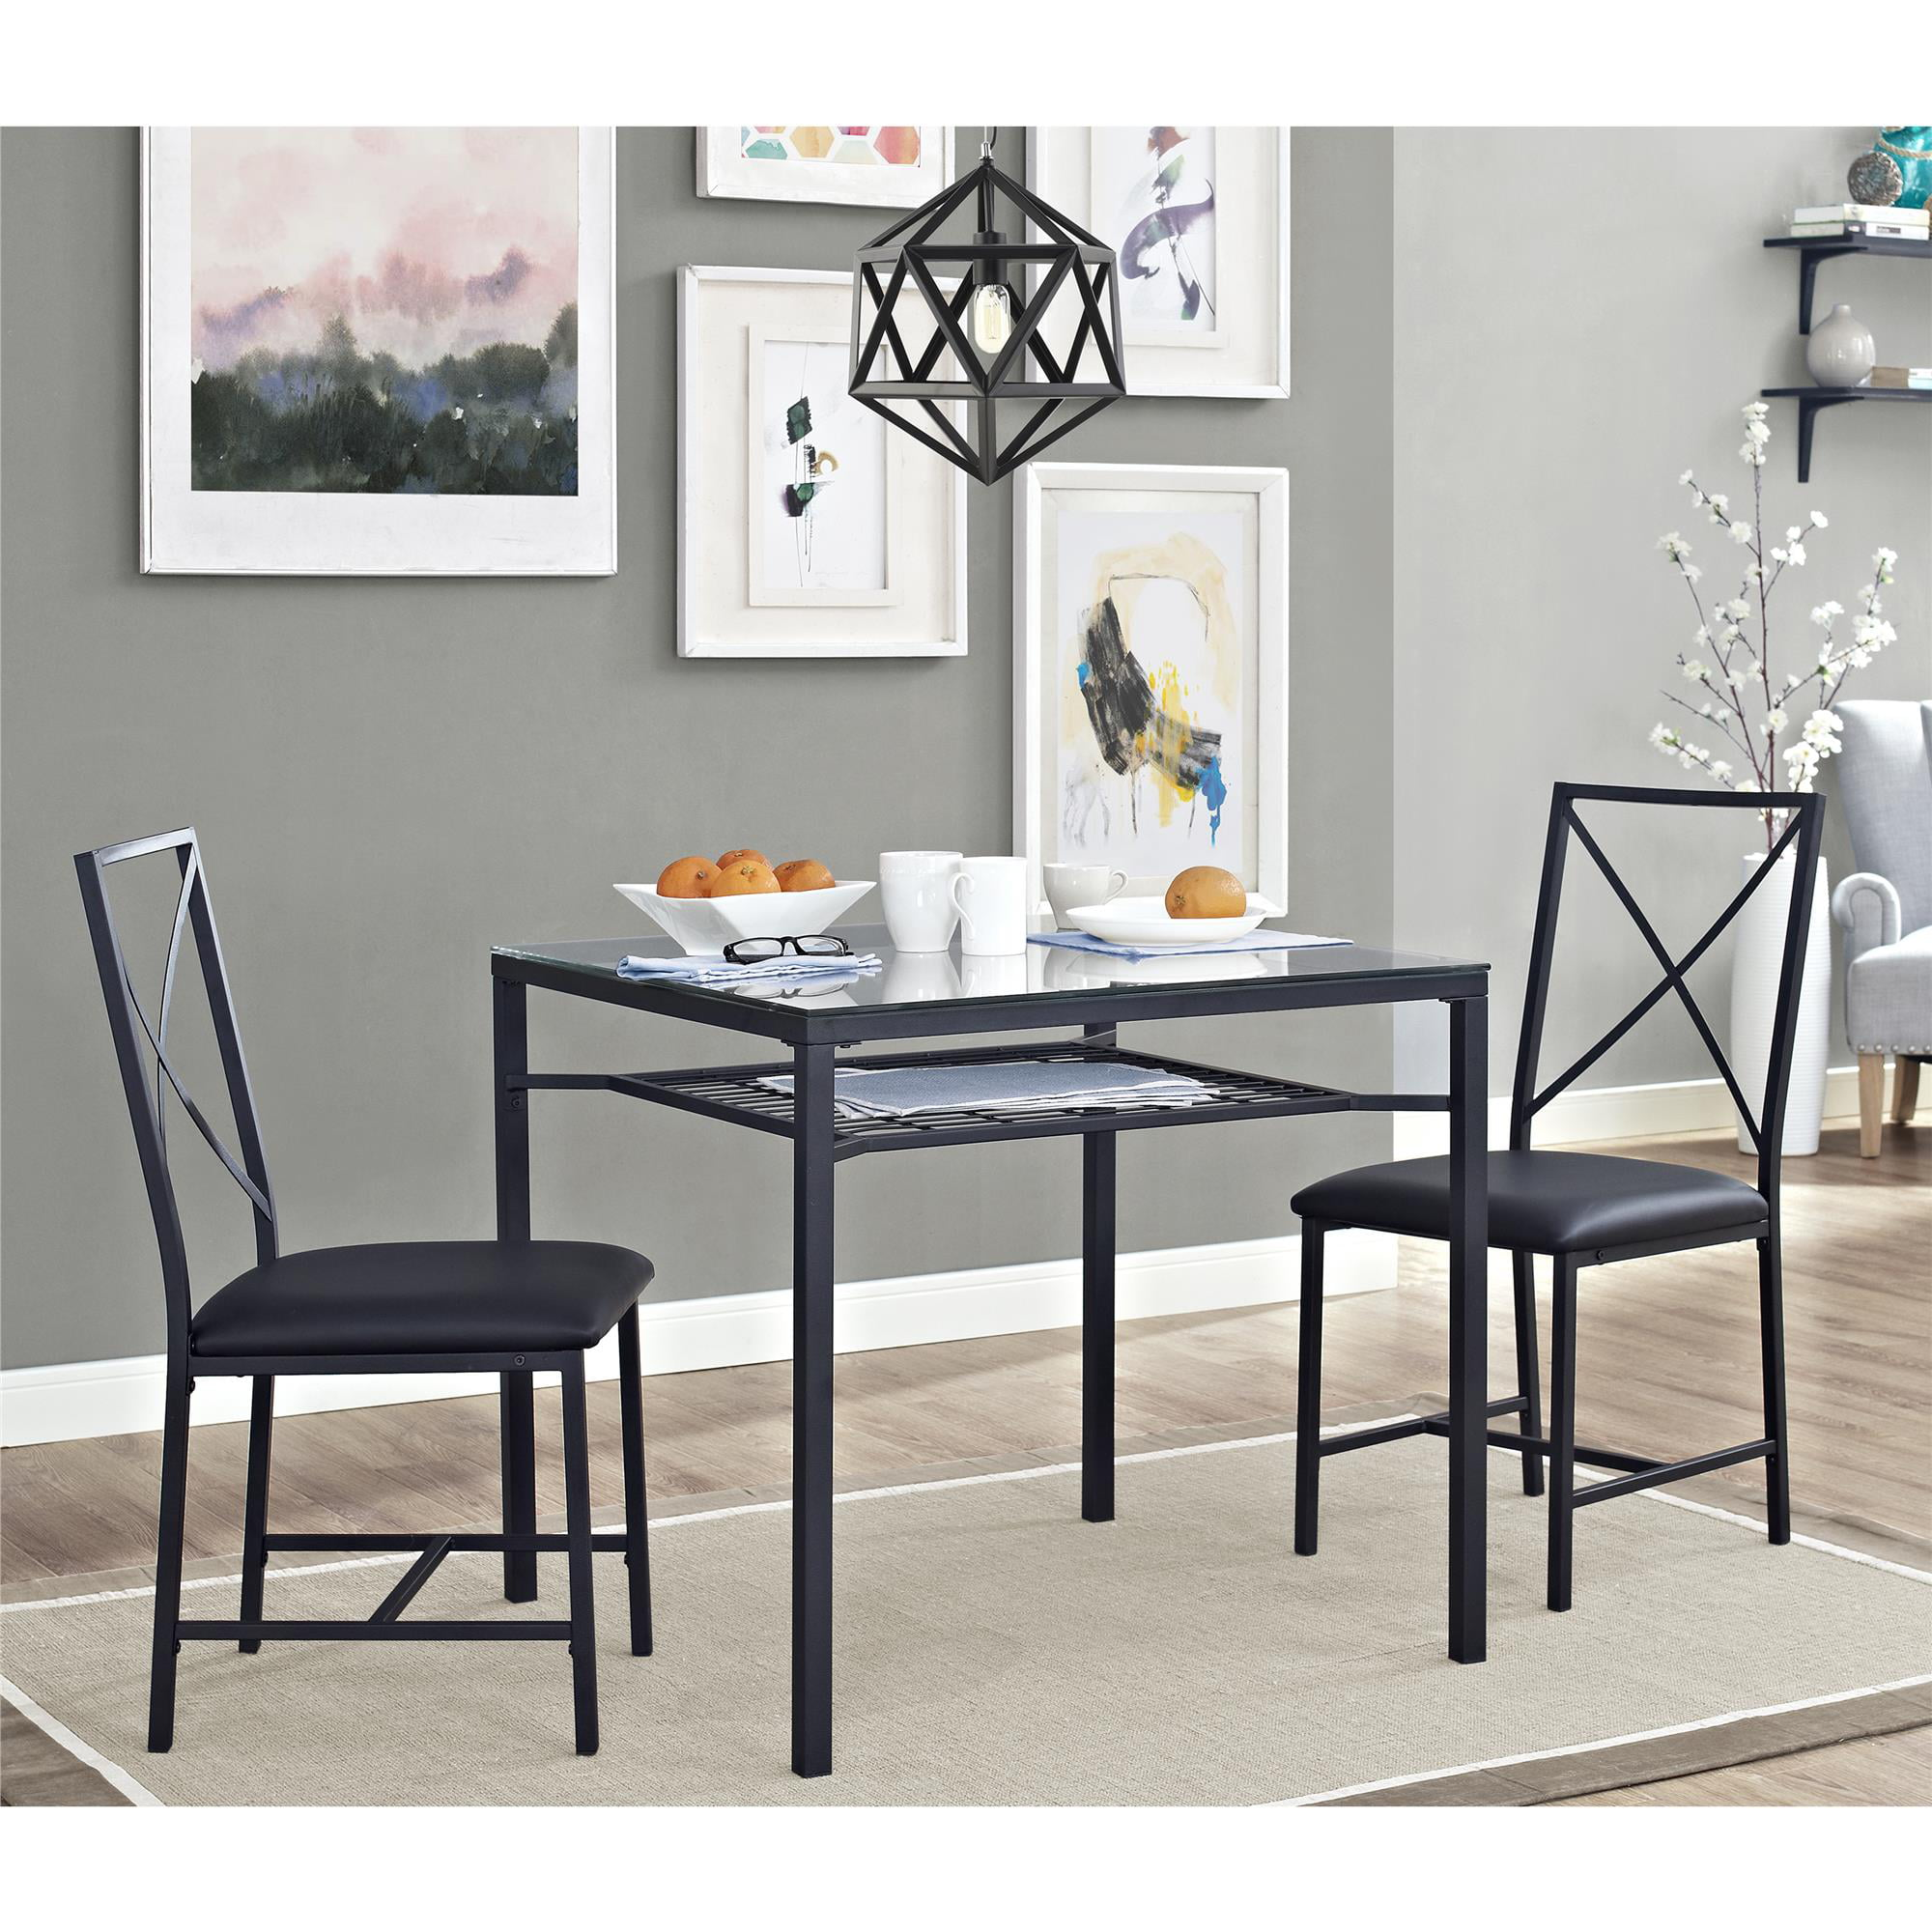 Mainstays 3 Piece Metal Glass Dinette Dining Room Furniture Black Walmart Com Walmart Com